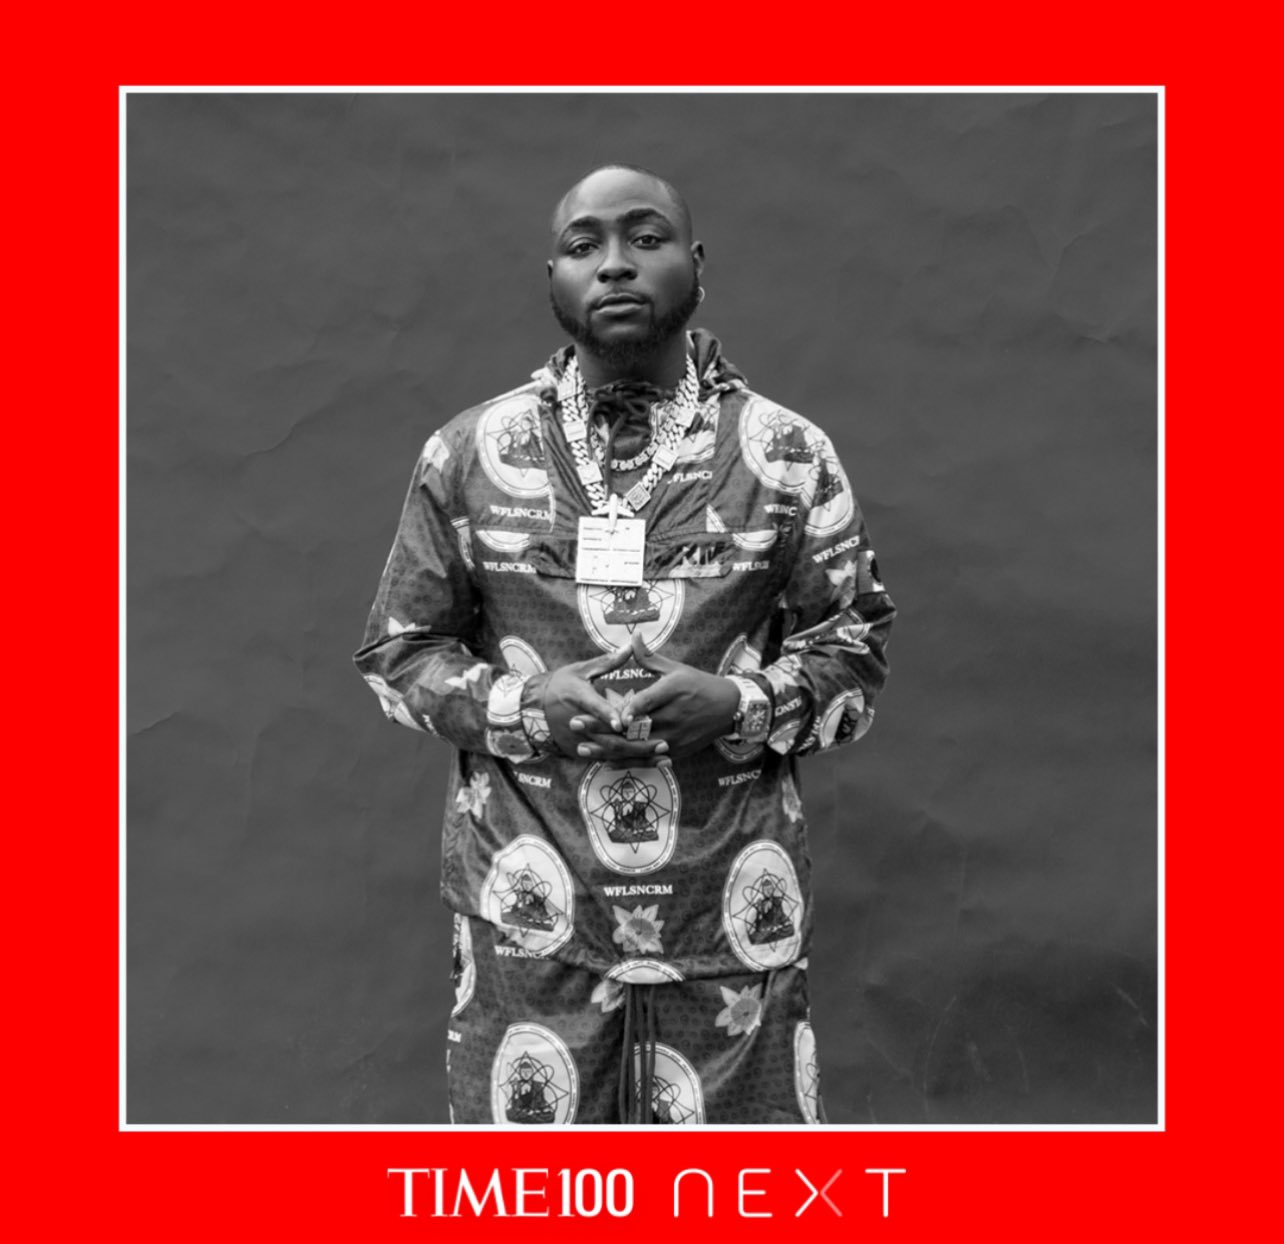 Davido Gets Enlisted in TimesNext100 Inaugural List, Reacts